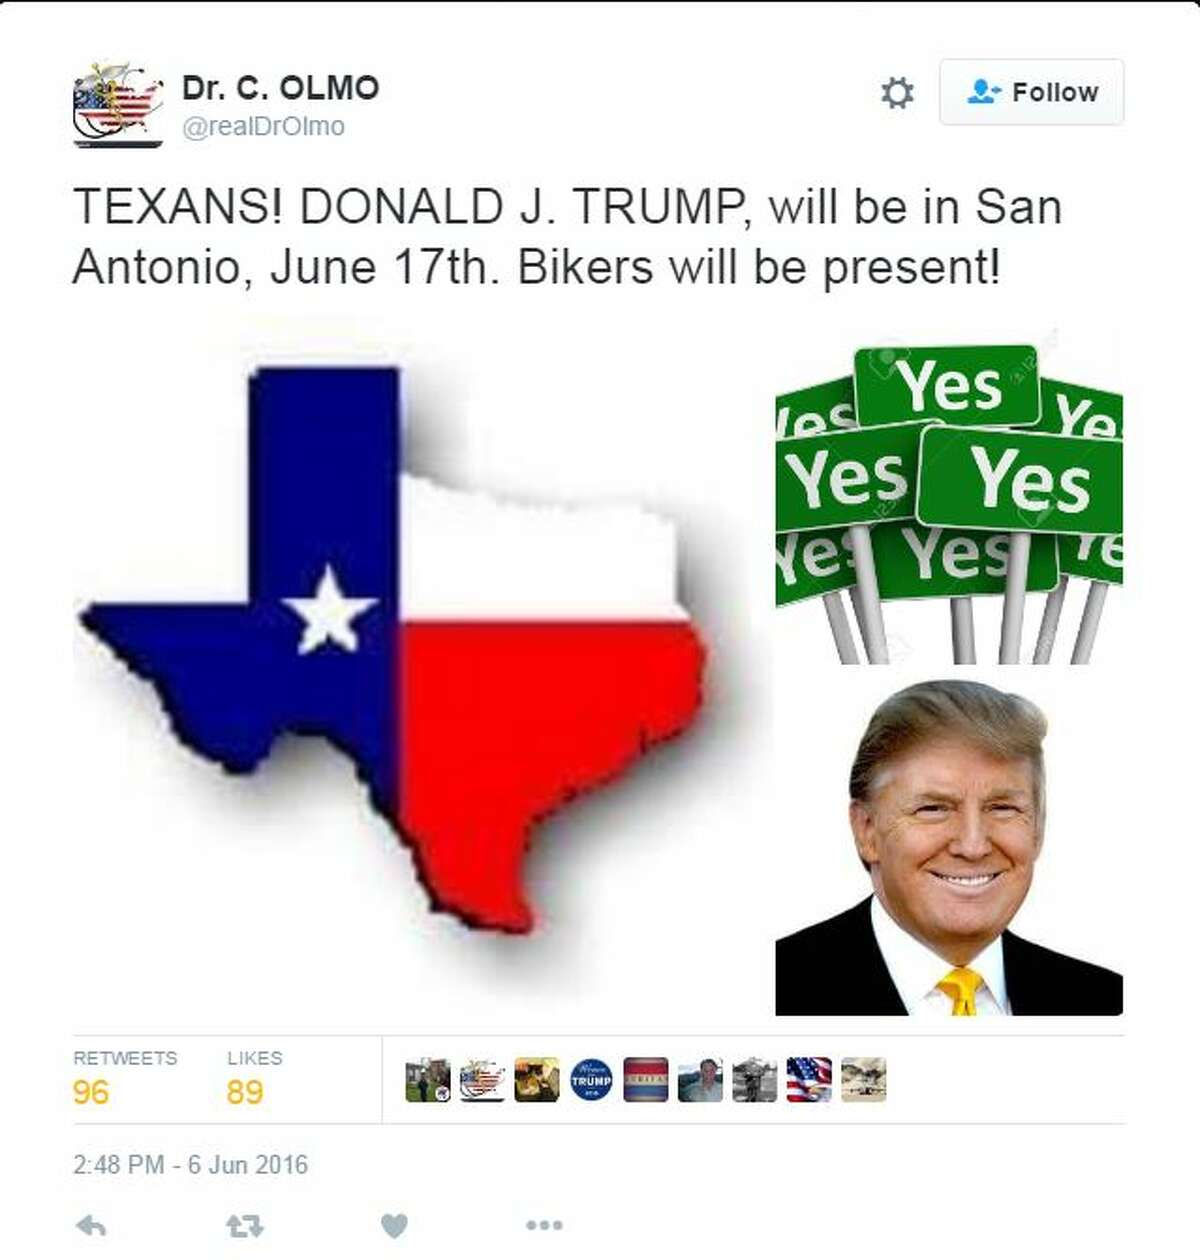 When news broke that Donald Trump is planning a fundraising visit to San Antonio on June 17, people had plenty to say about it on social media.